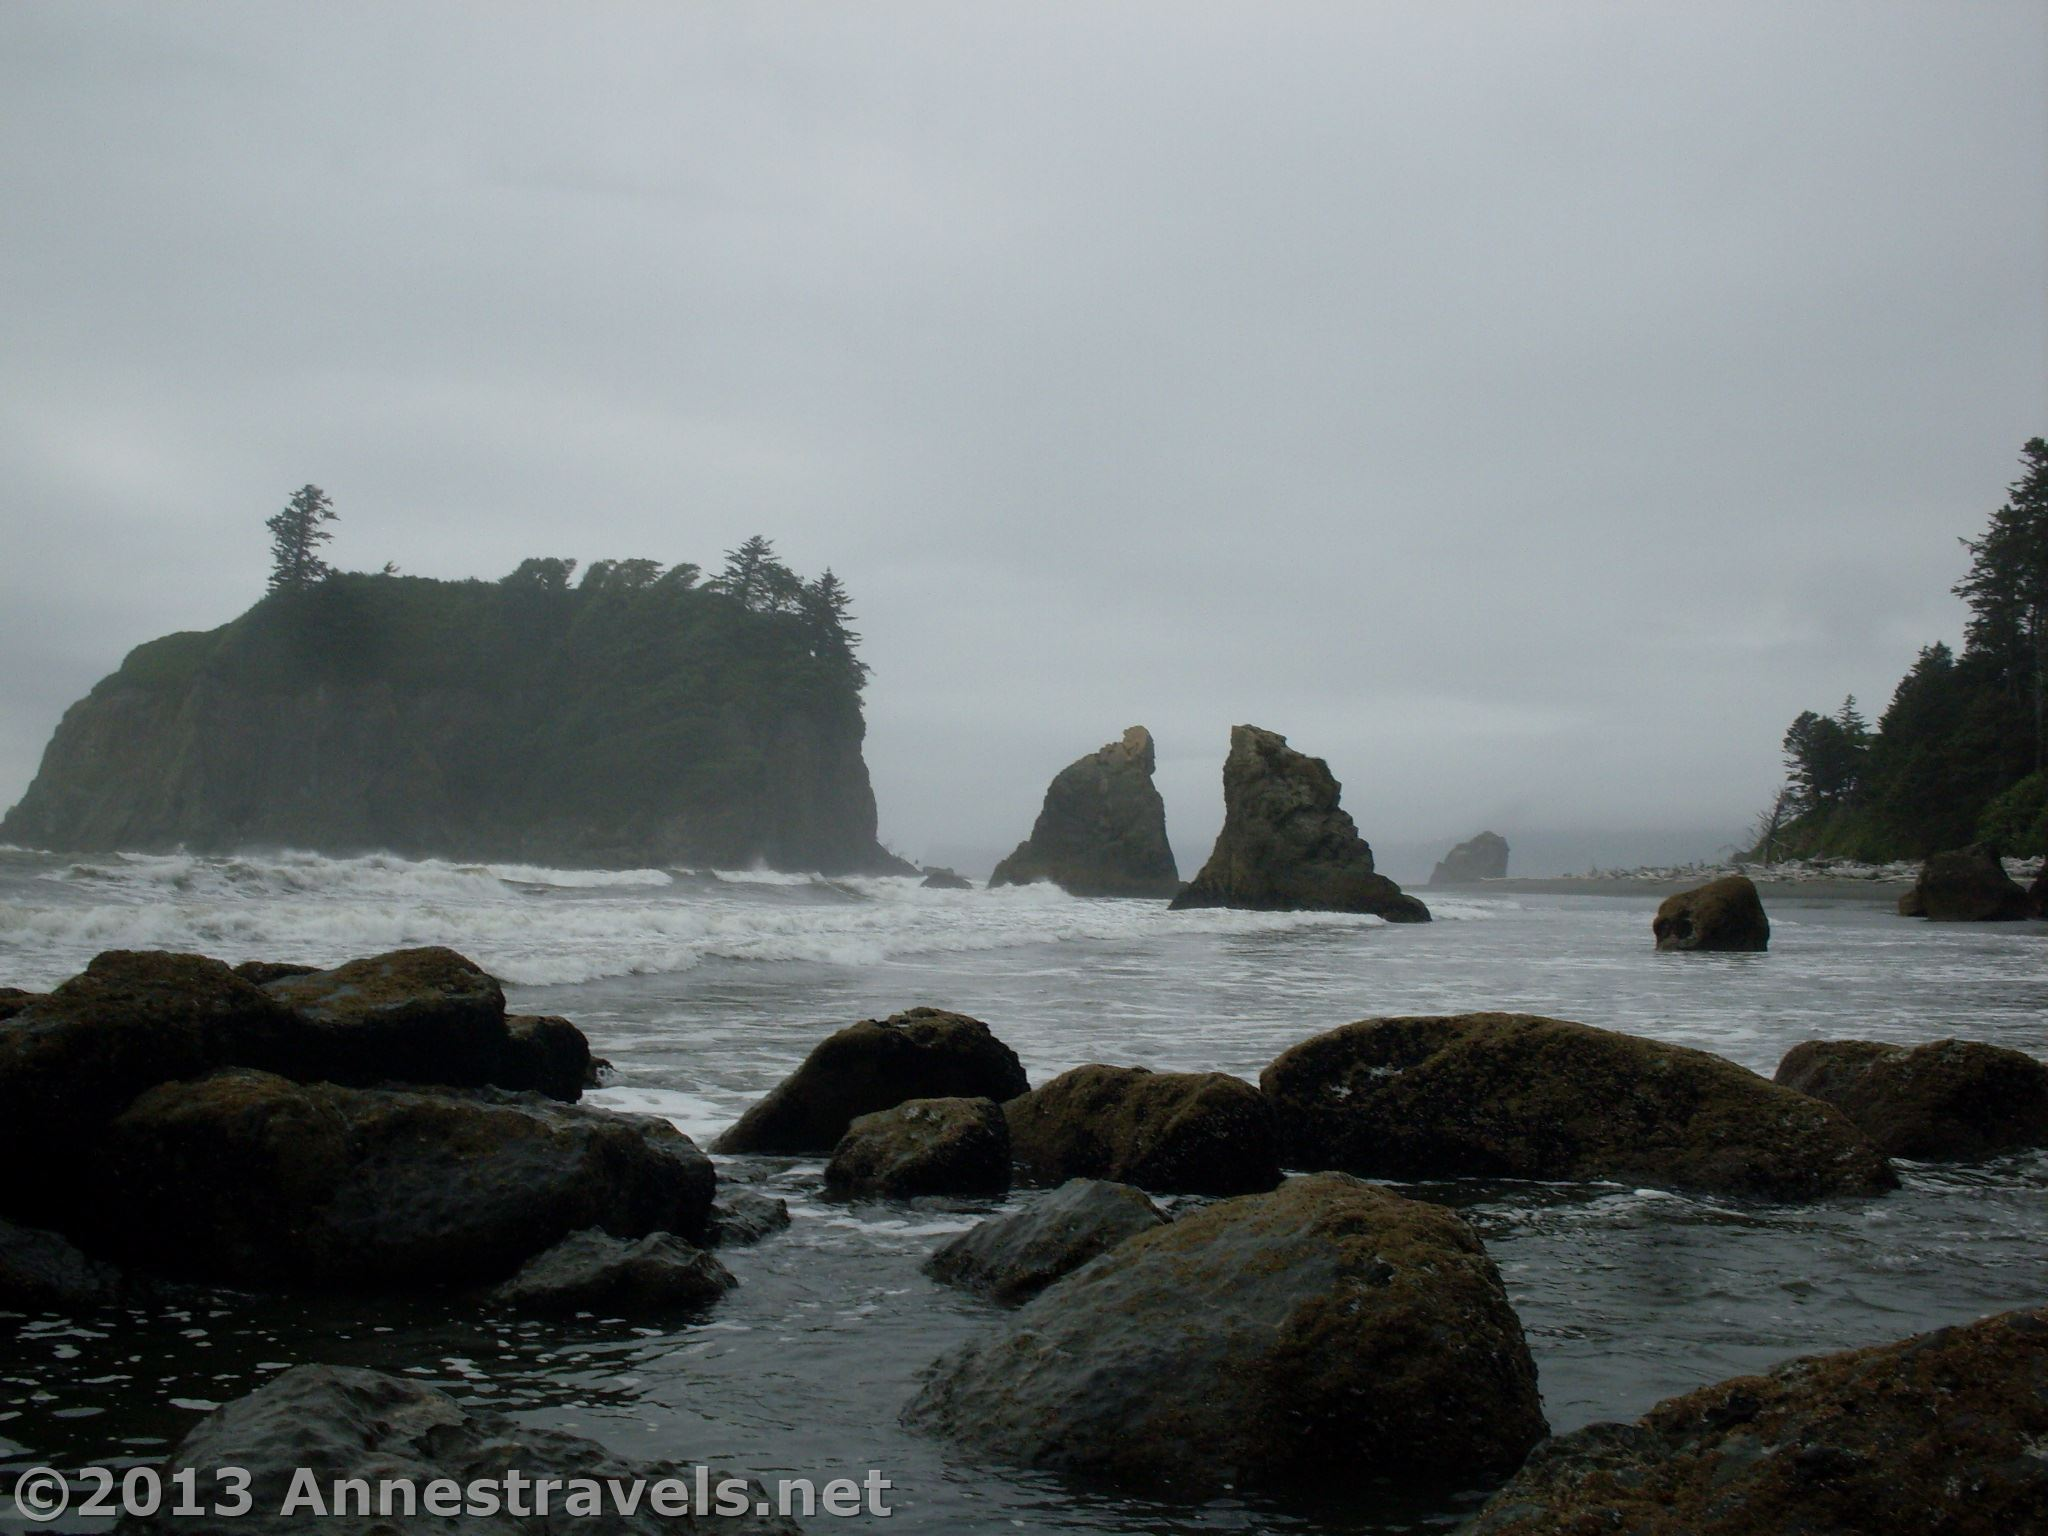 Sea Stacks, Sea Arches, and Wilderness at Ruby Beach